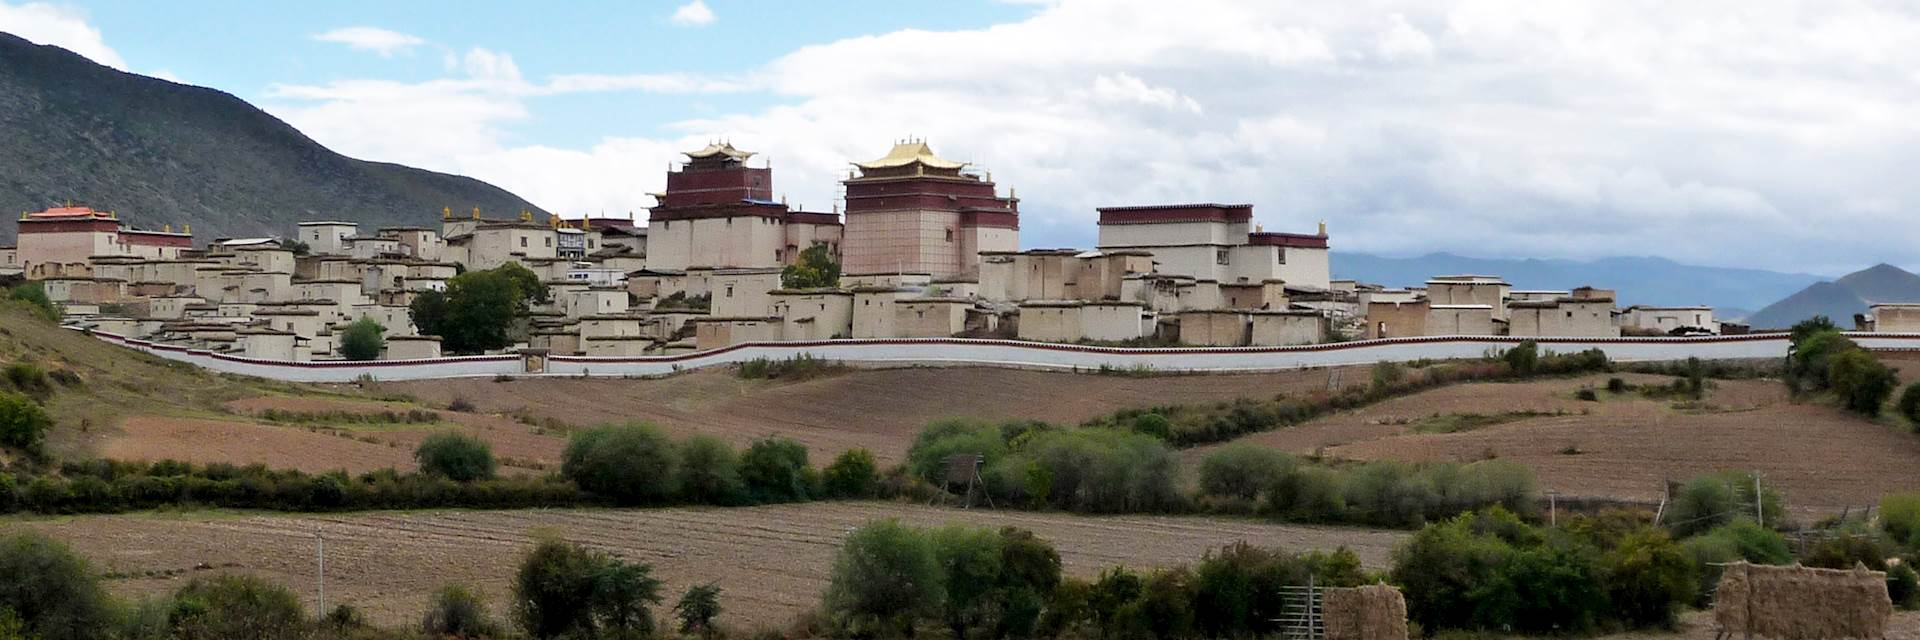 View of Songzanlin Monastery from Songtsam Retreat, Yunnan province